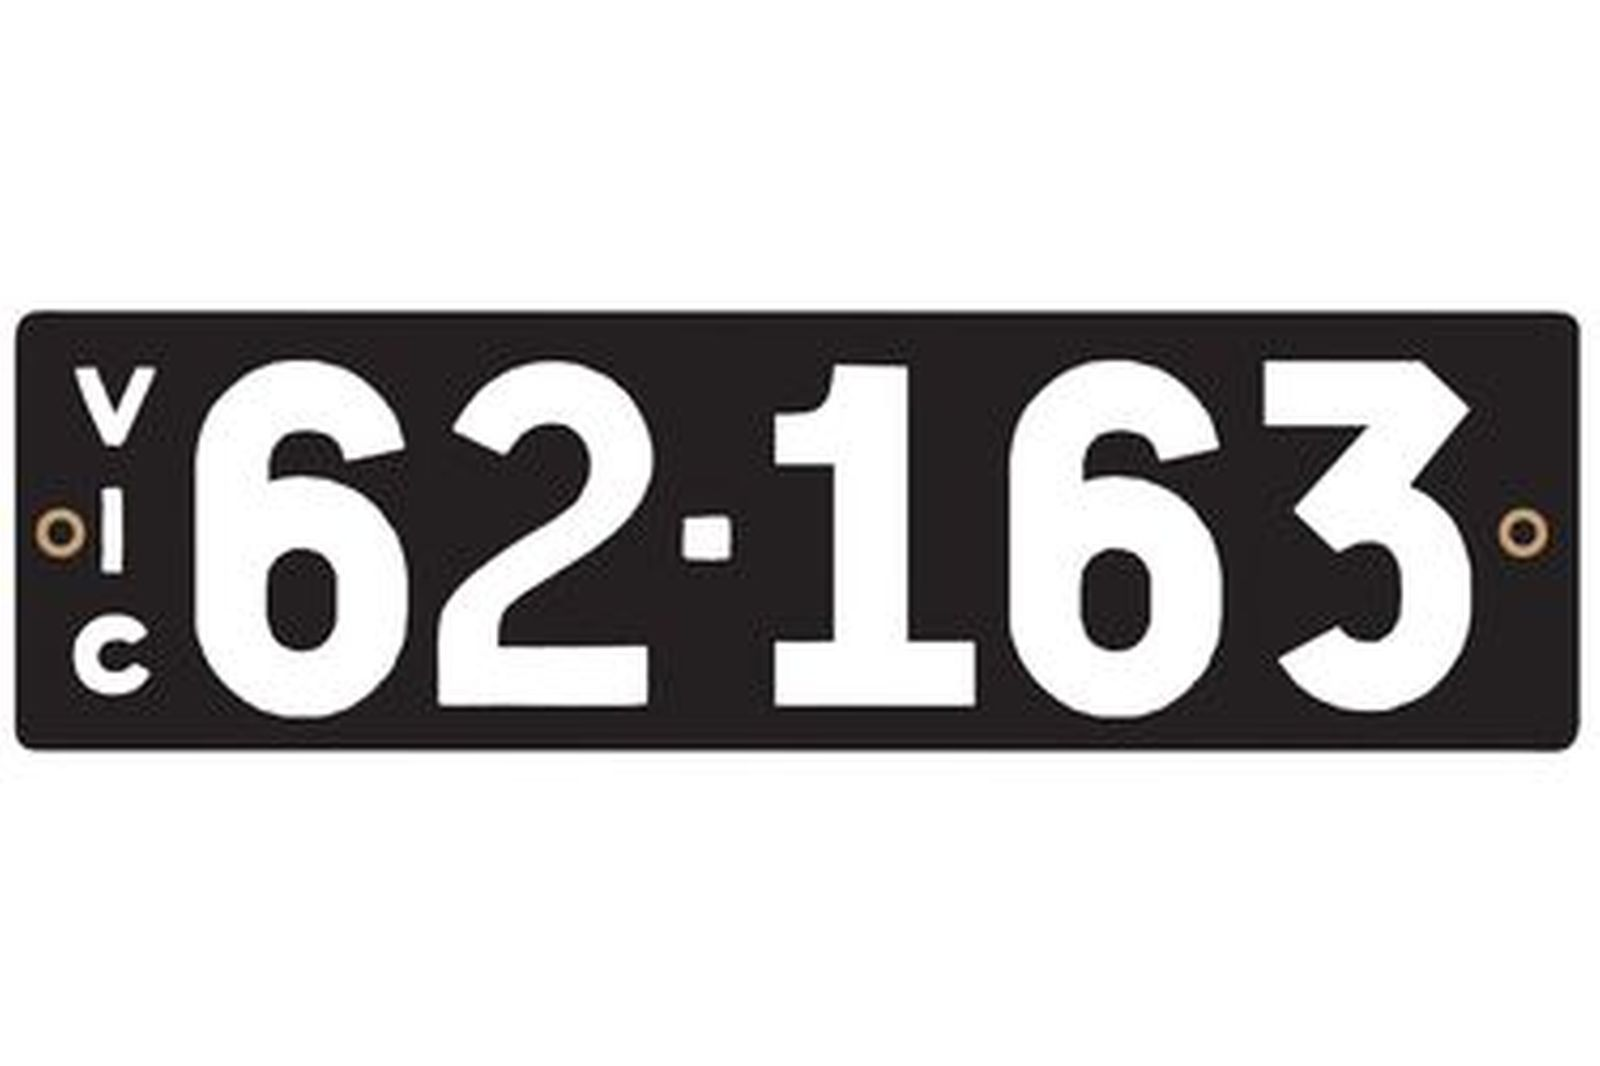 Victorian Heritage Numerical Number Plate - 62.163